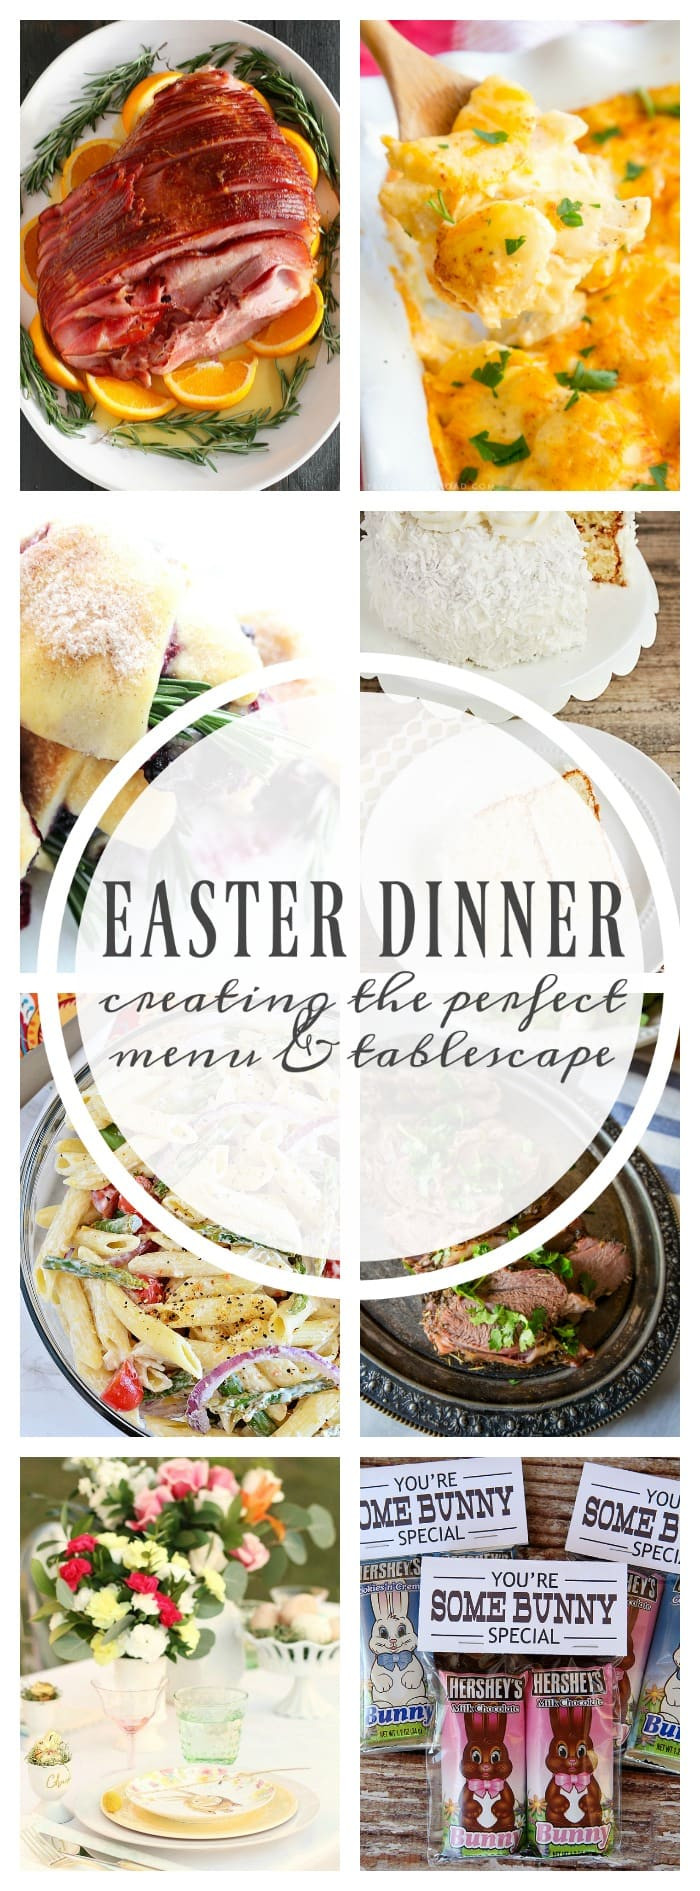 Easter Dinner Menu  EASTER DINNER CREATING THE PERFECT MENU & TABLESCAPE A